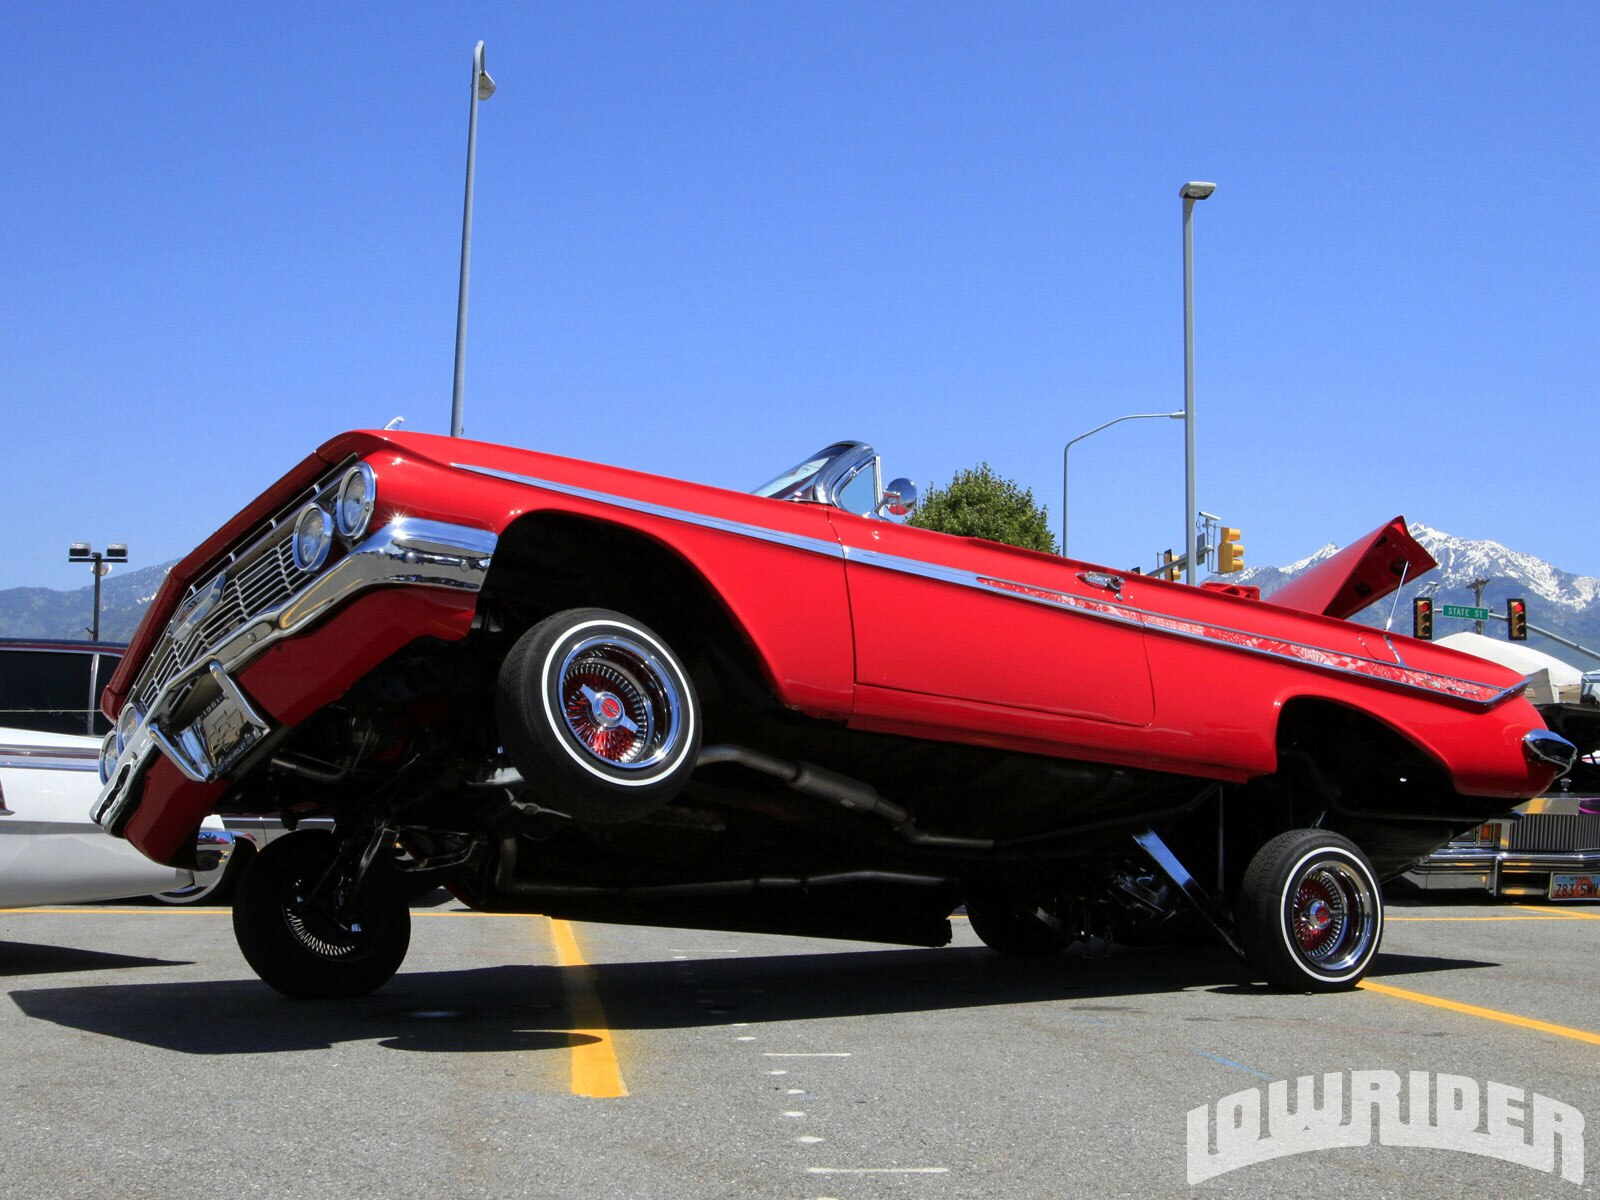 Victor's Tires 5th Annual Car Show - Lowrider Magazine